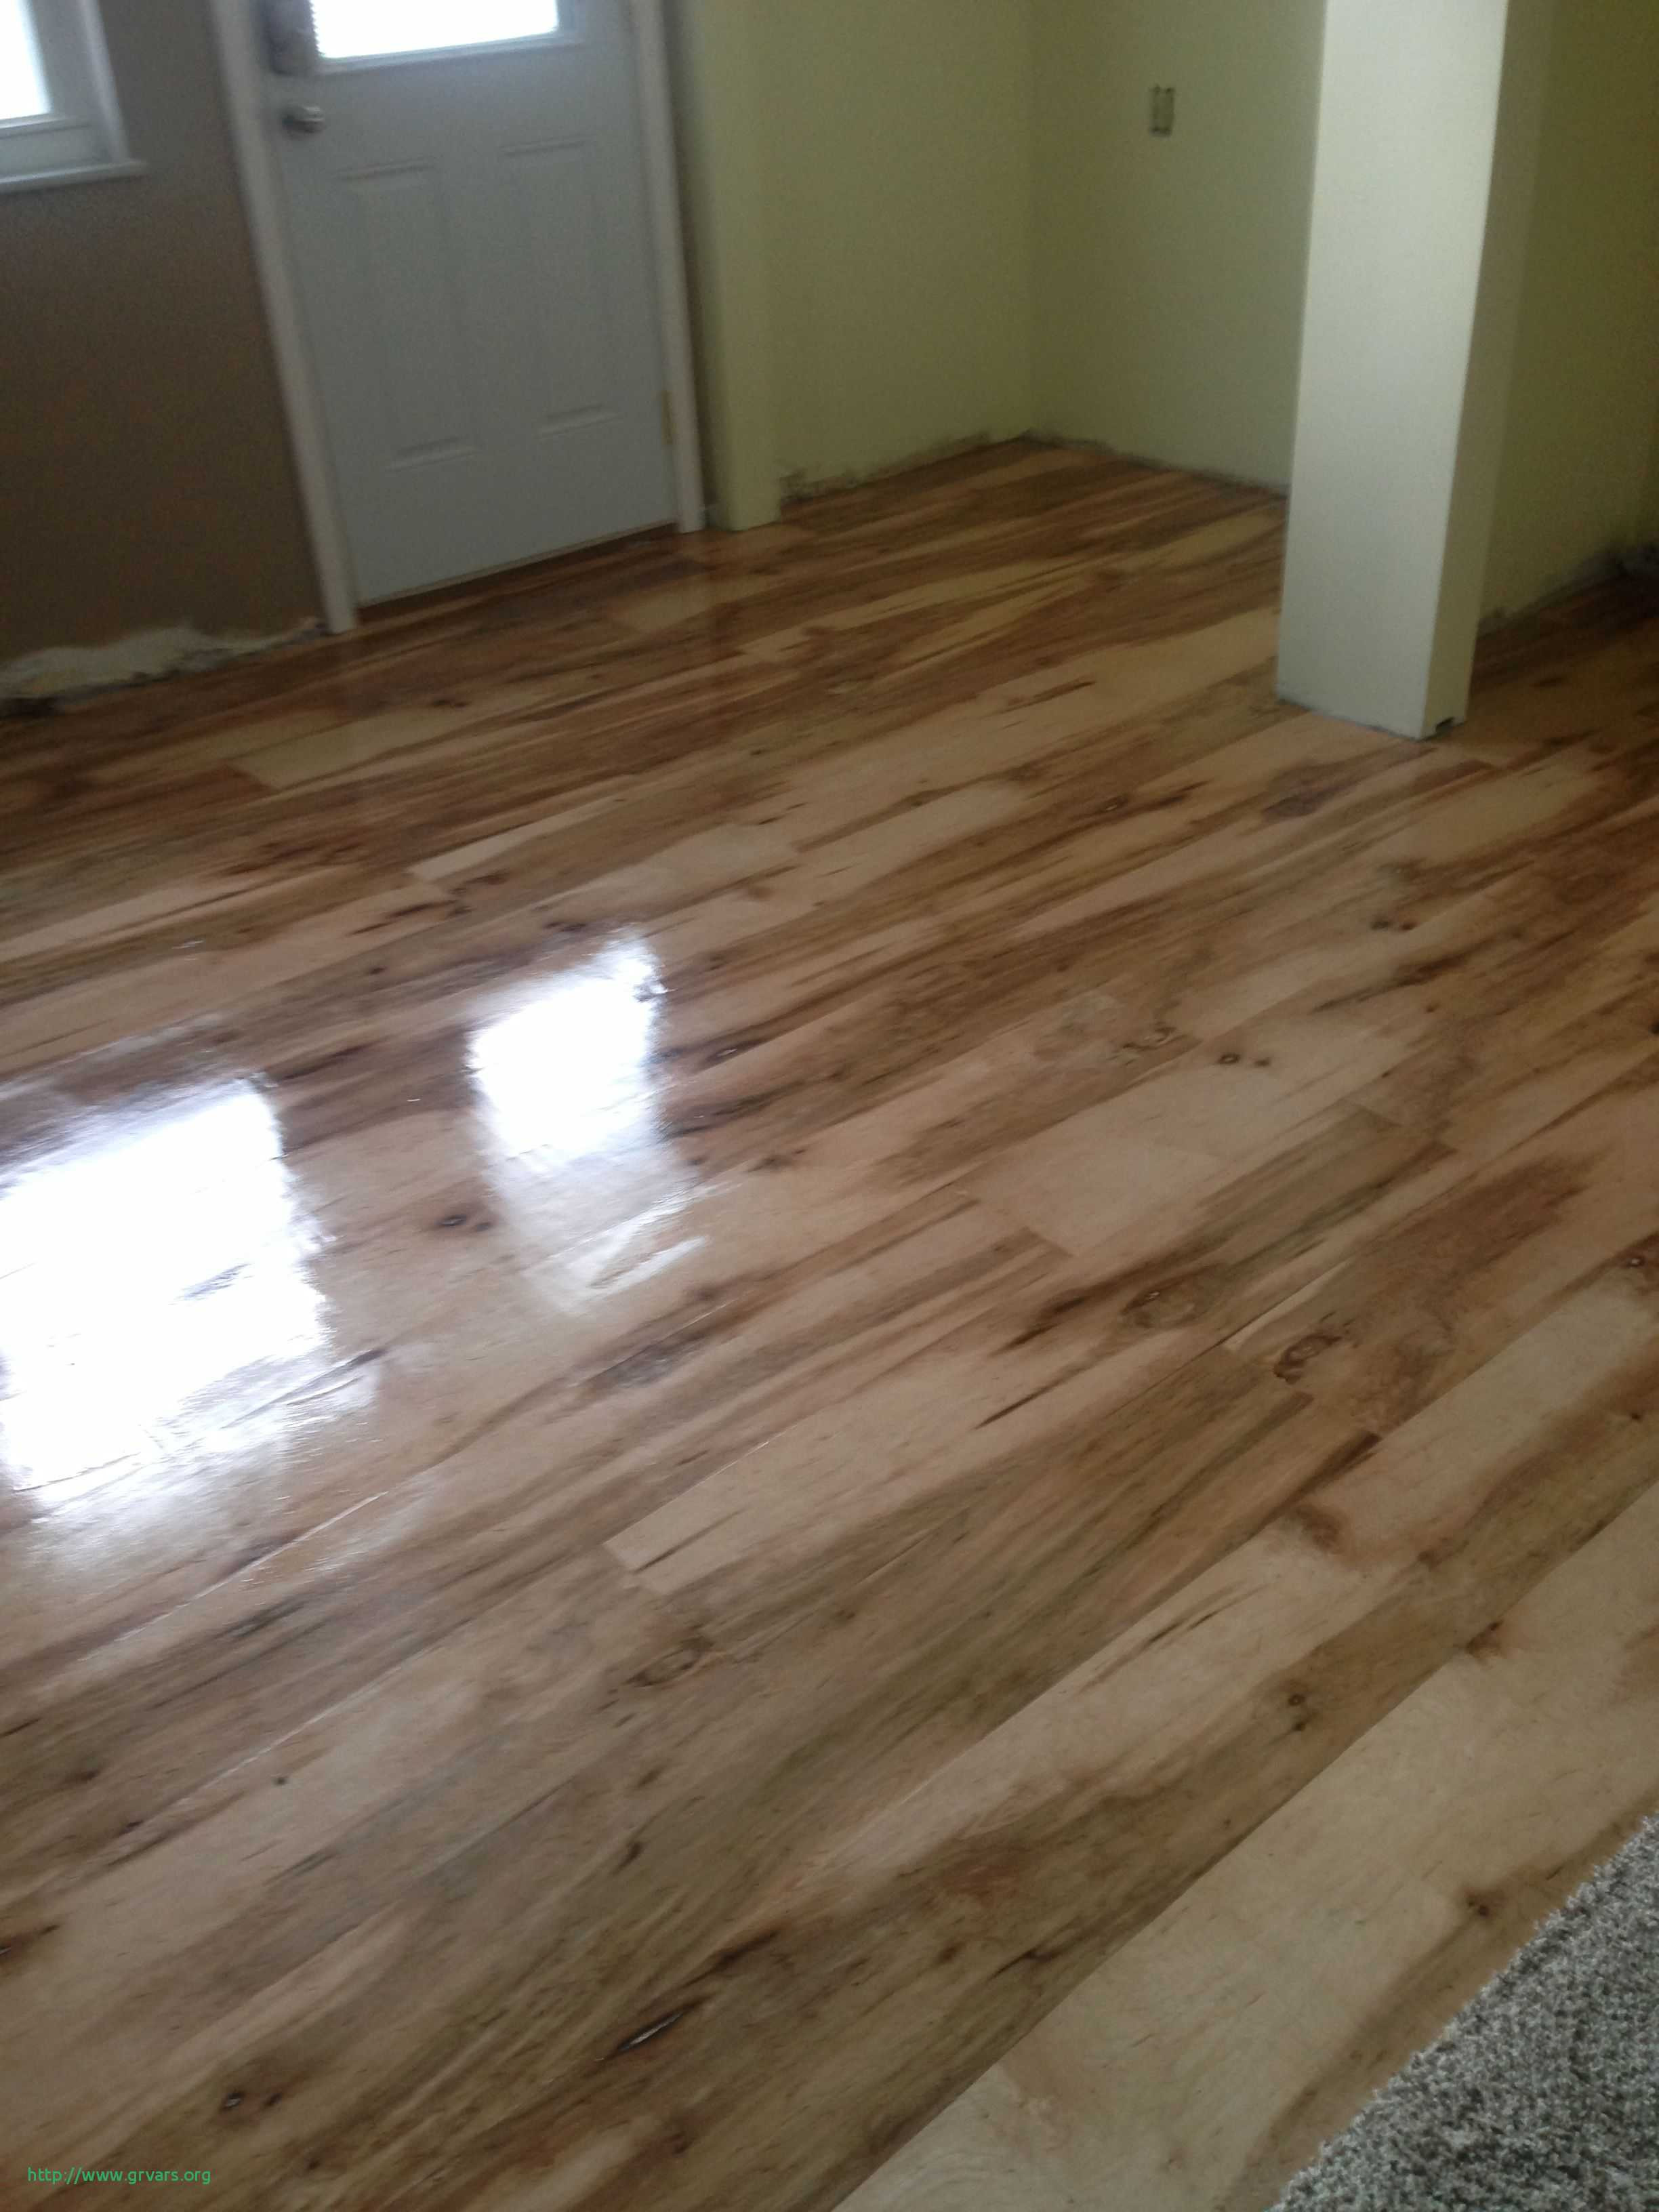 unfinished hardwood flooring for sale of 21 inspirant best prices for laminate wood flooring ideas blog with regard to best prices for laminate wood flooring unique engaging discount hardwood flooring 5 where to buy inspirational